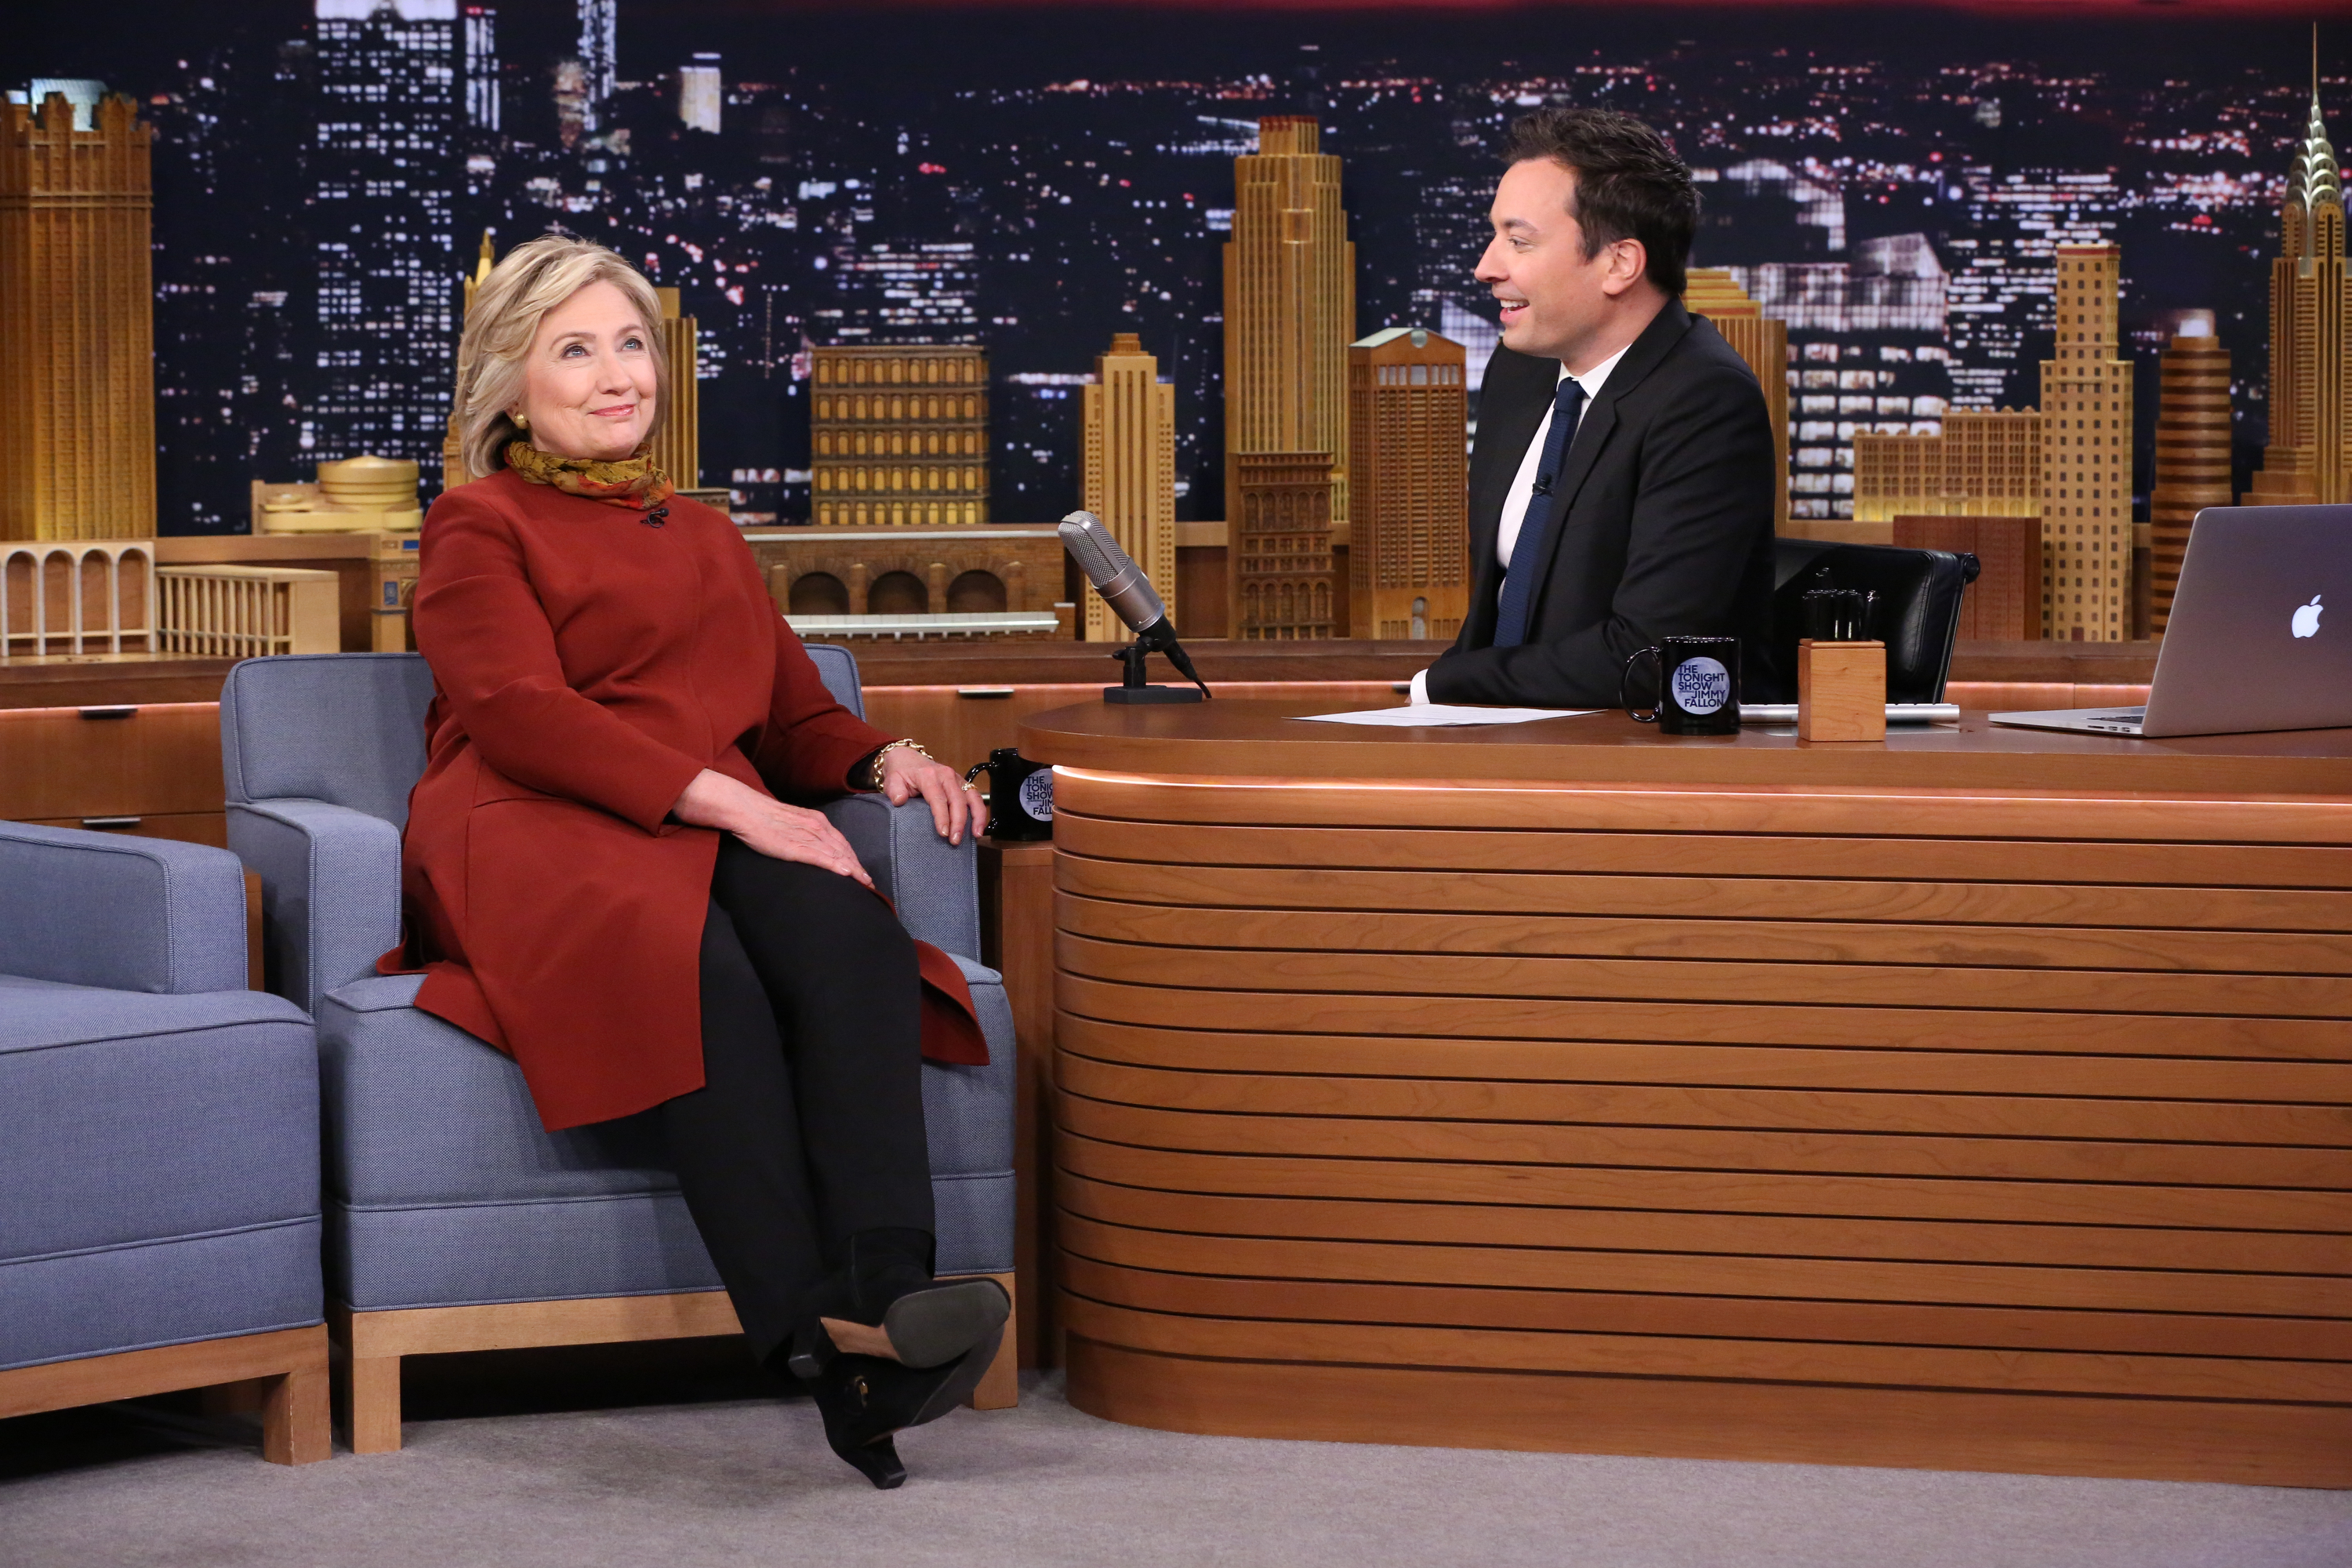 Presidential Candidate Hillary Clinton during an interview with host Jimmy Fallon on Jan. 14, 2016